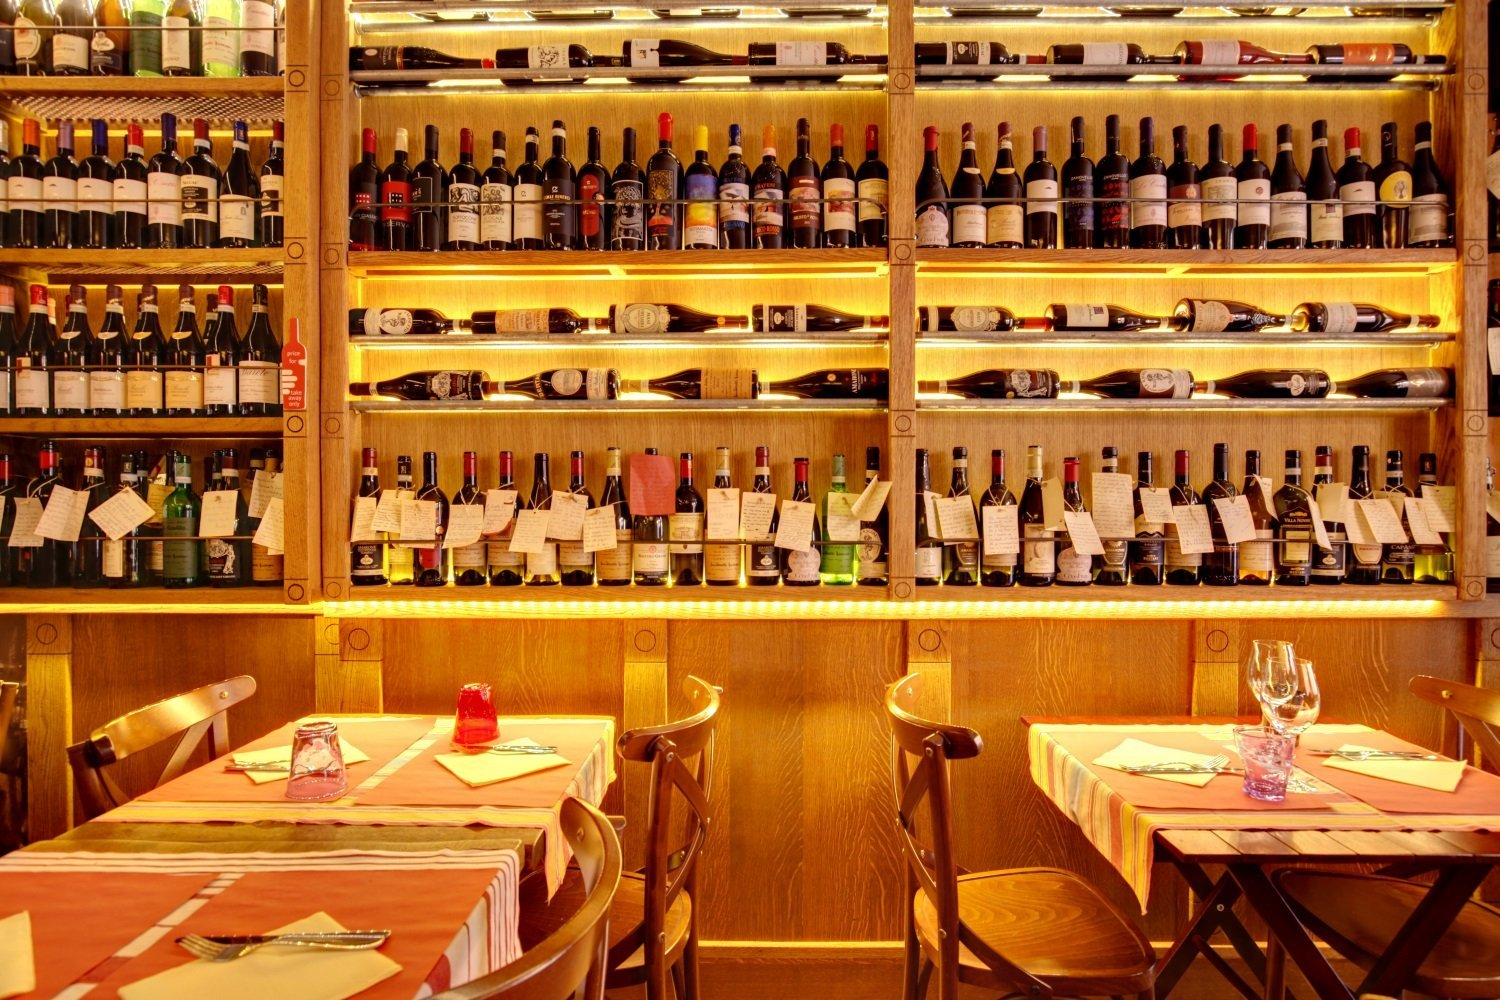 Vineria all'Amarone in Venice Italy